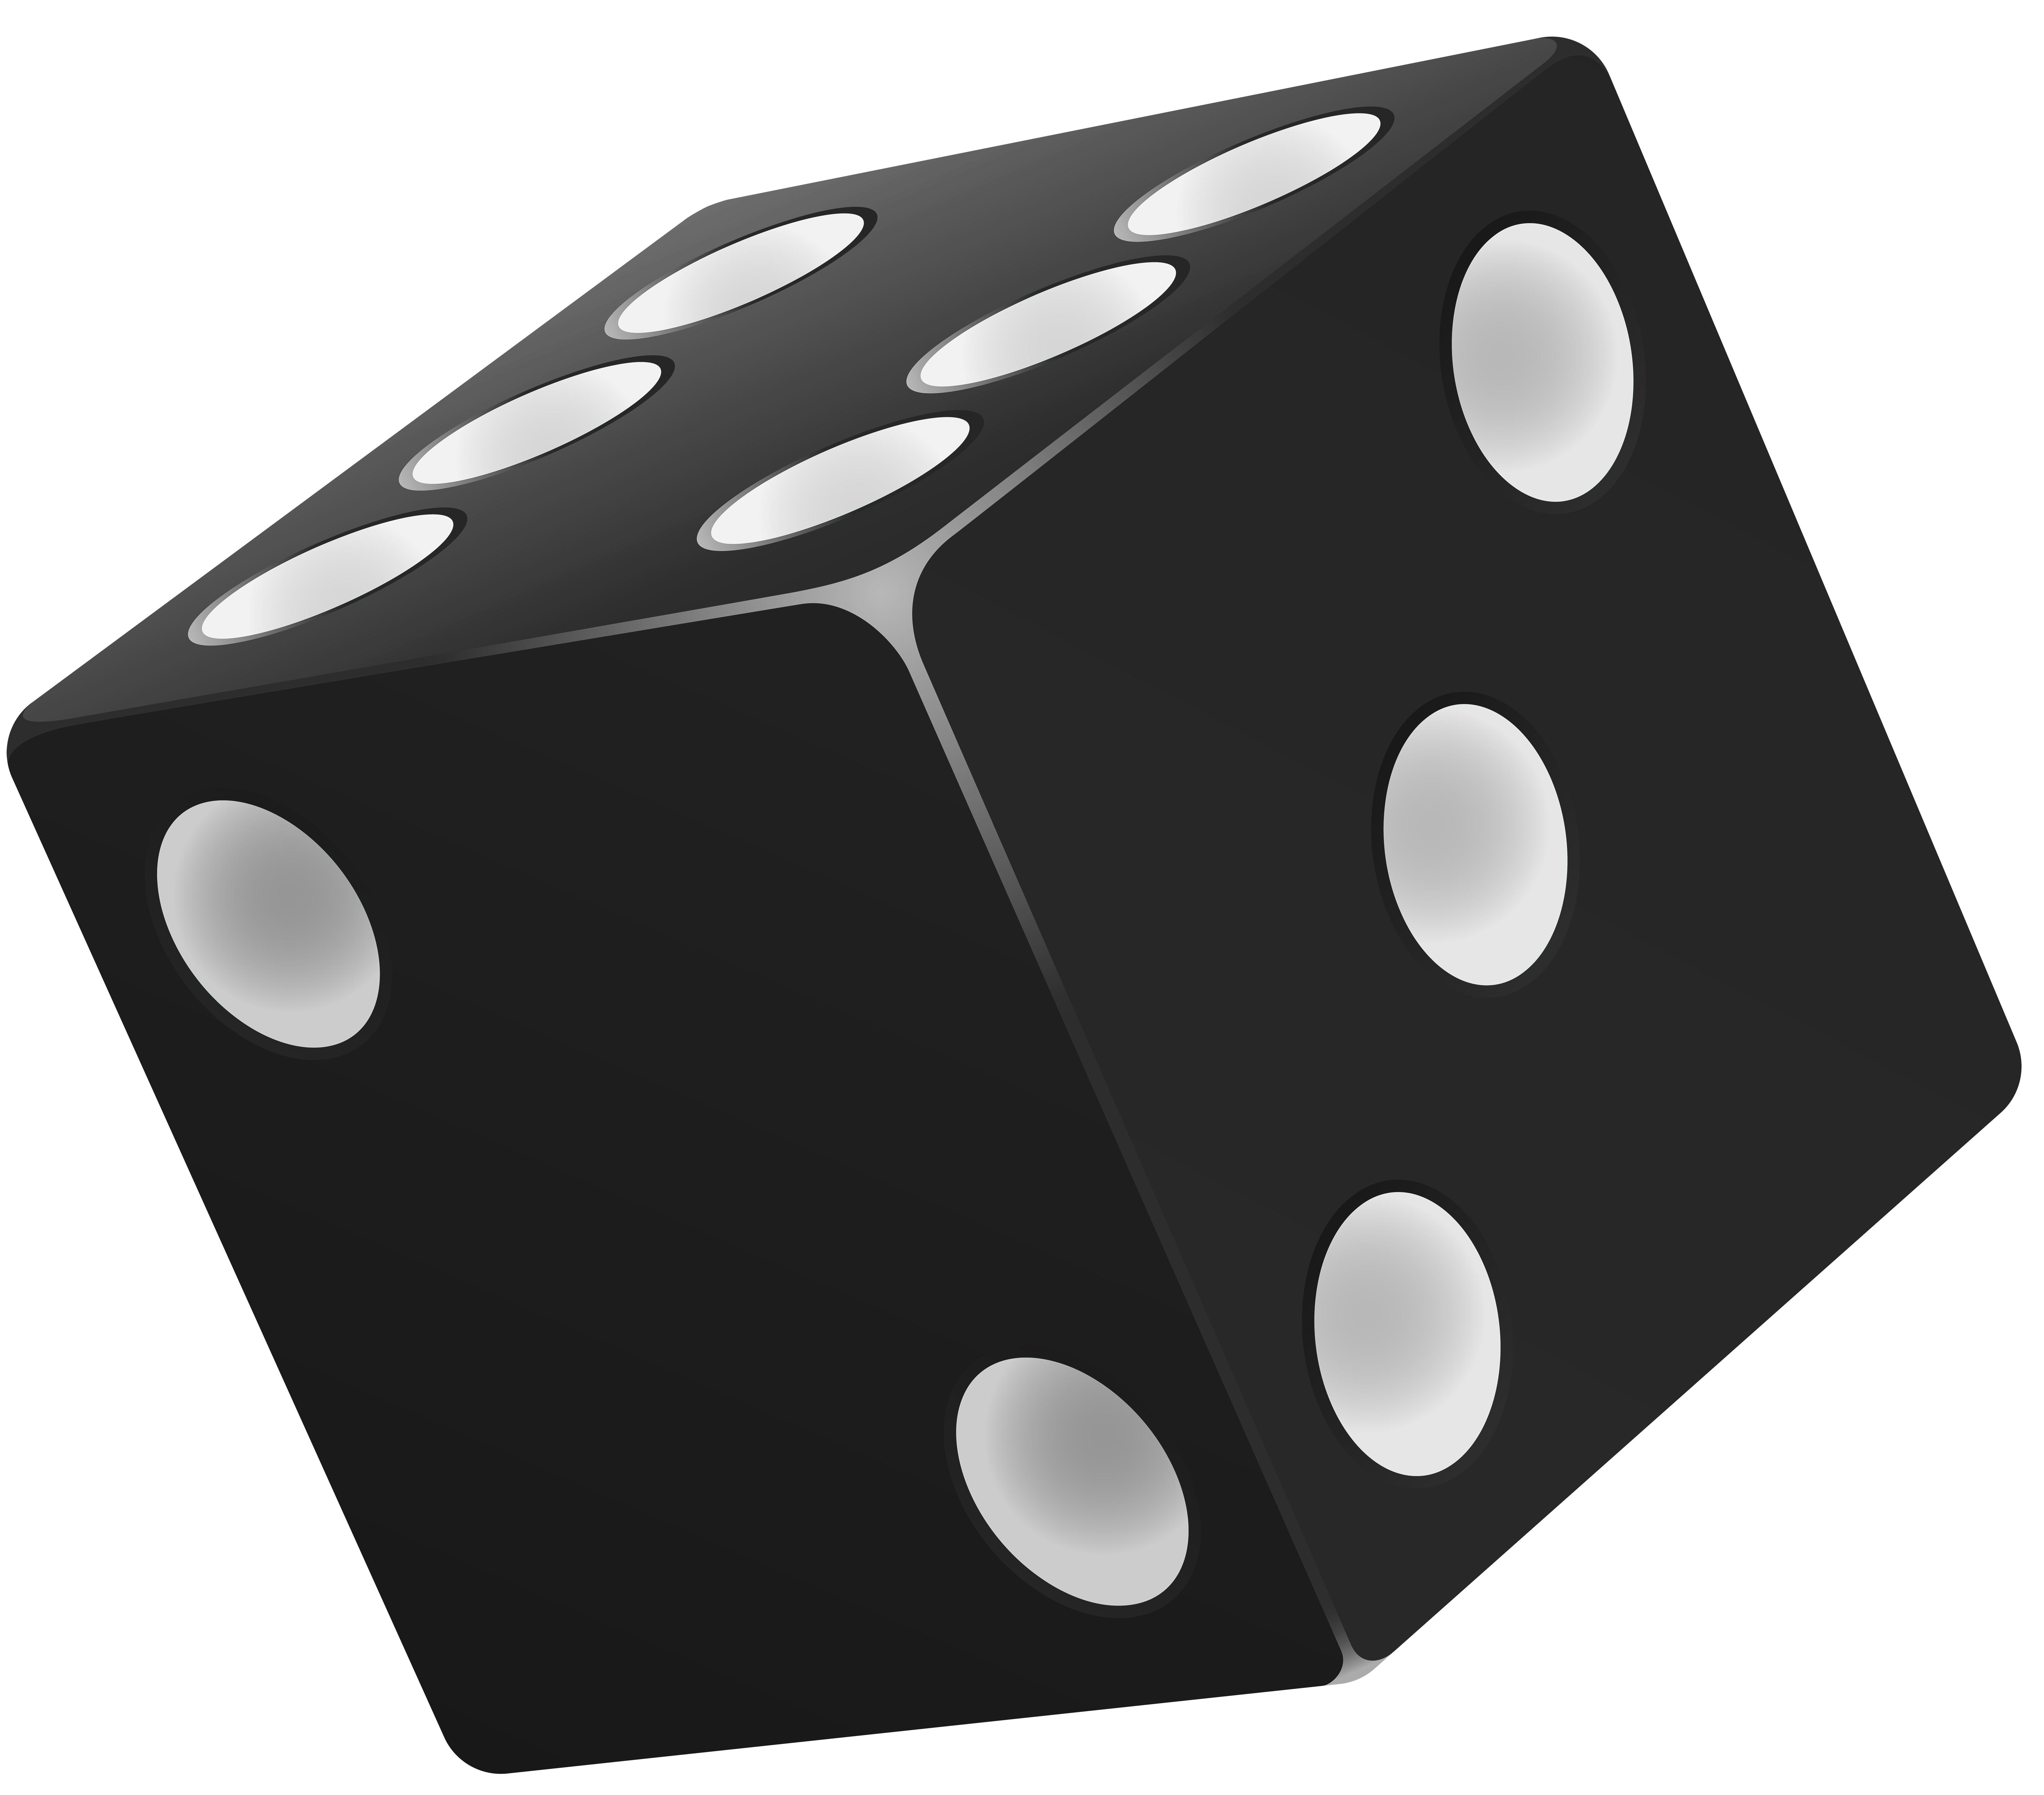 clipart library stock Black clip. Dice png art best